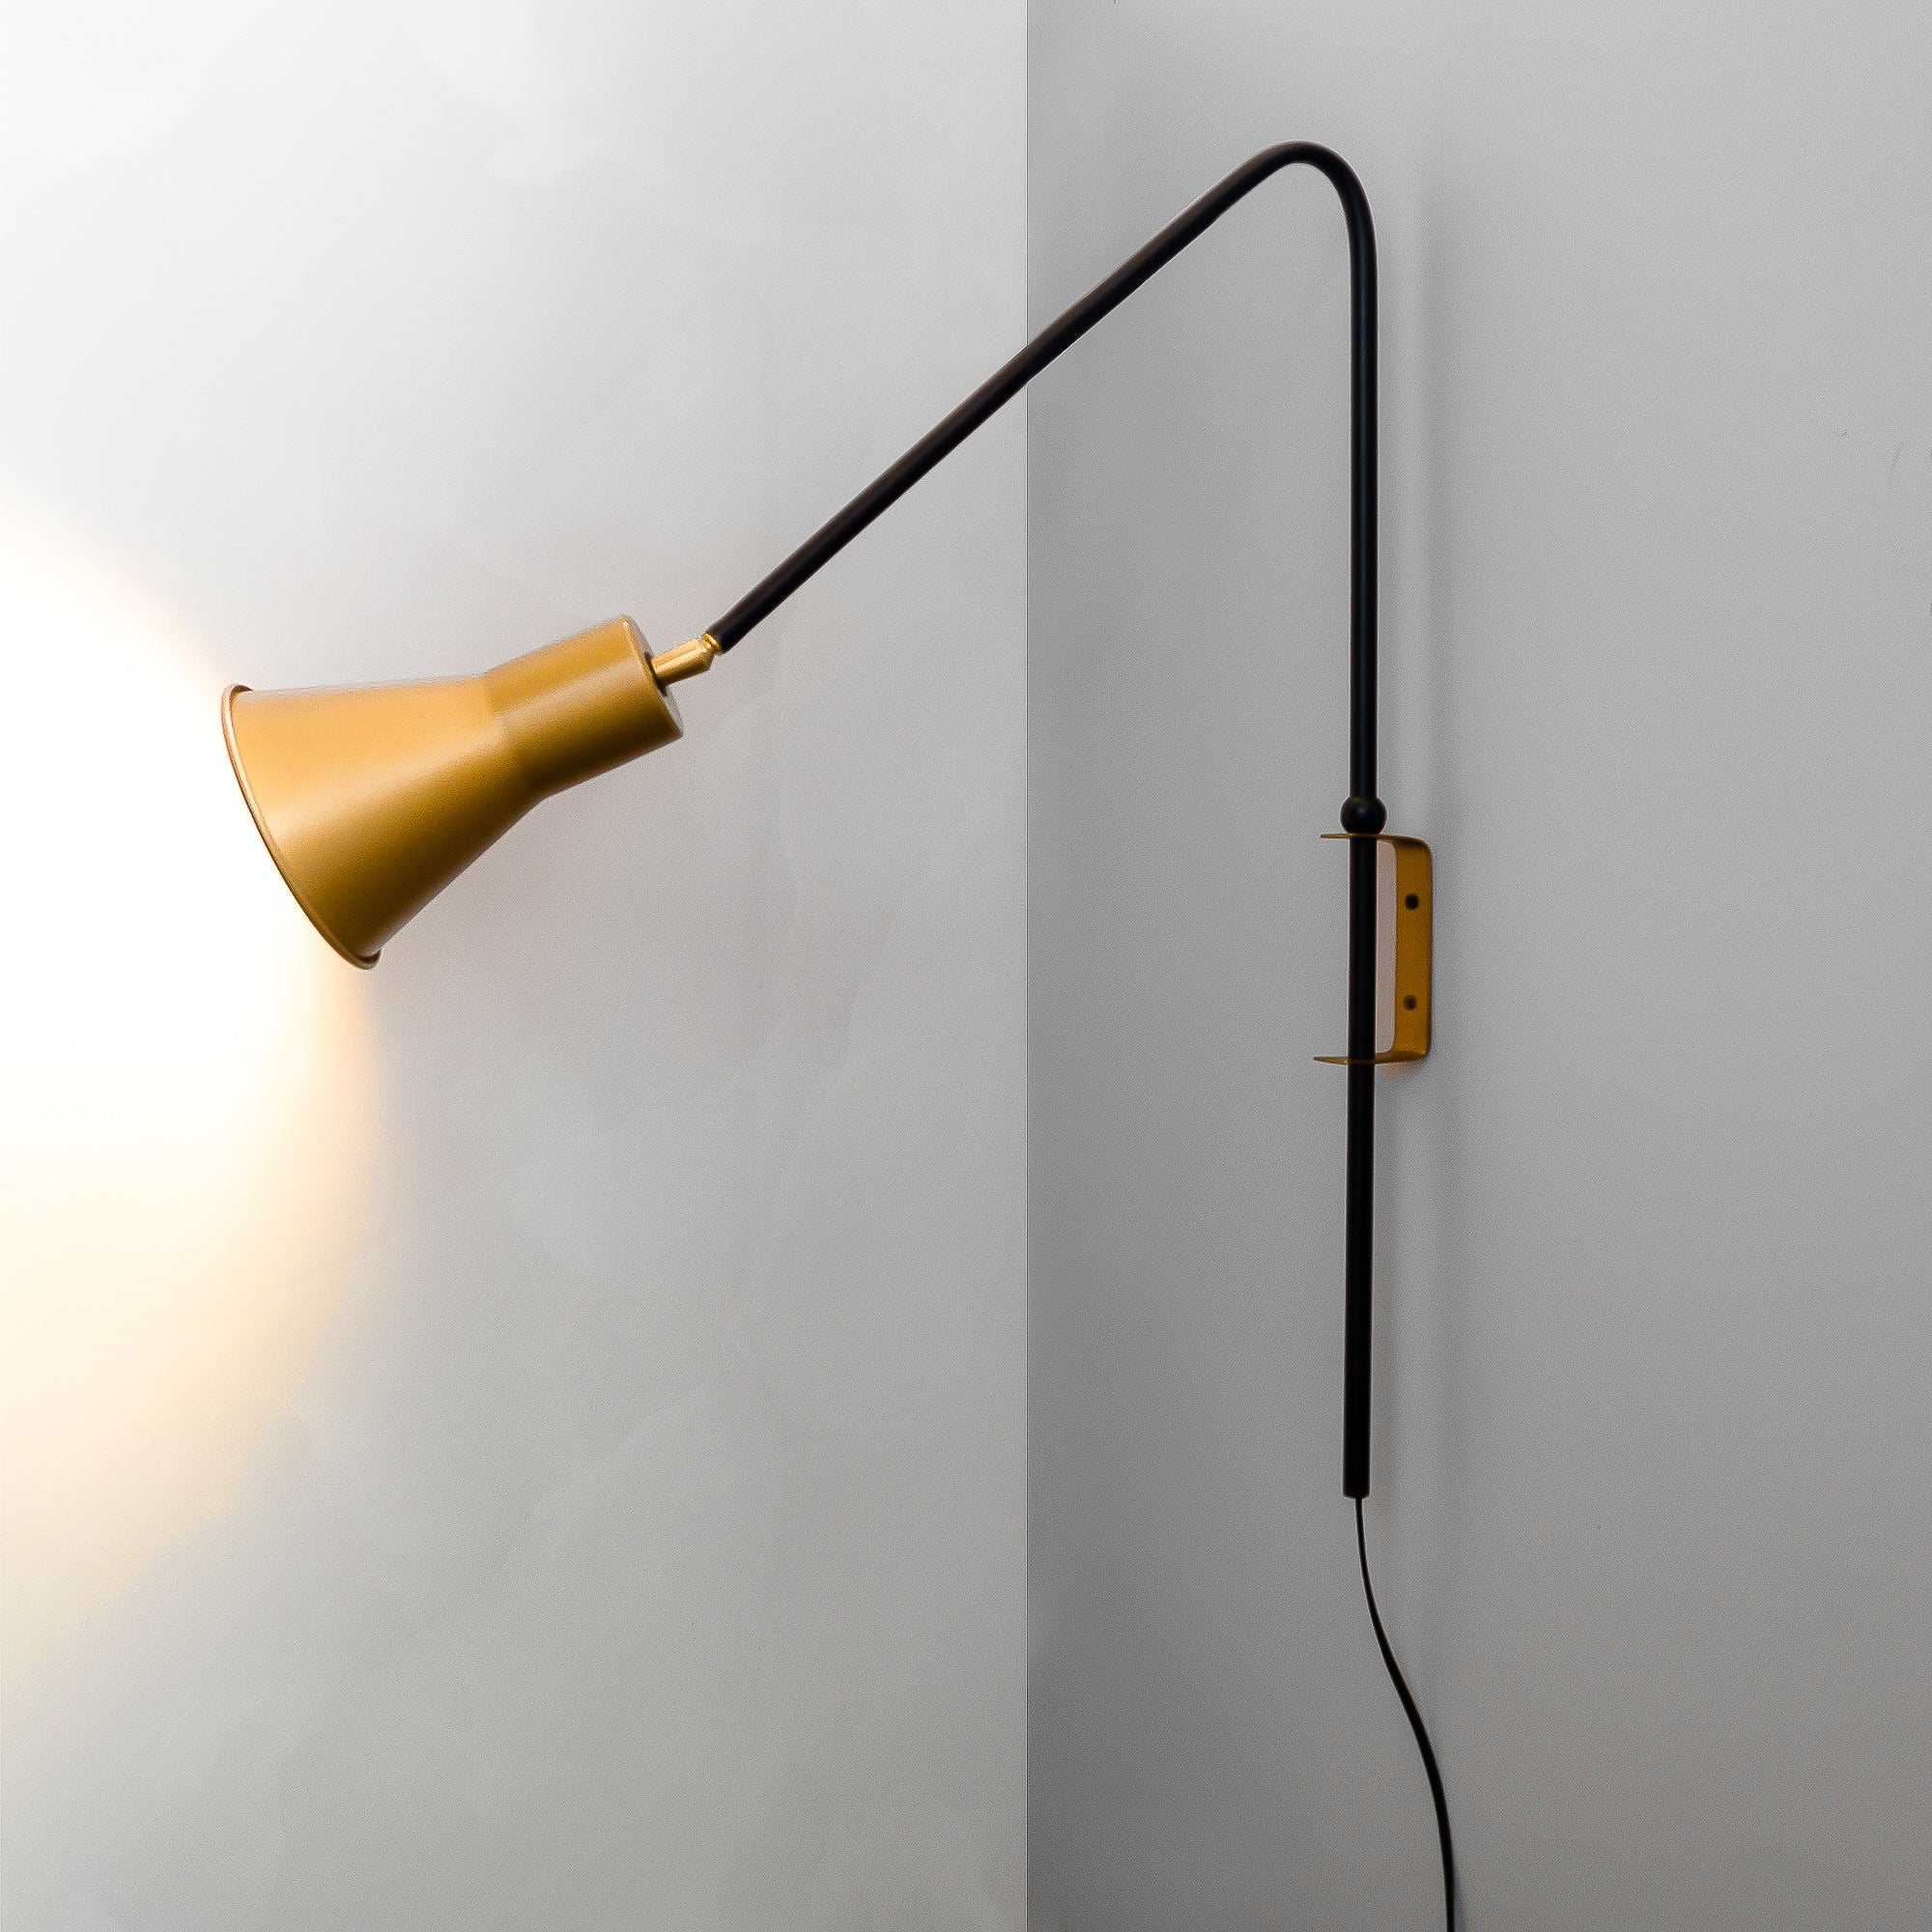 FSW 203 Gold Swivel Wall Sconce Adjustable Lampshade - The Black Steel